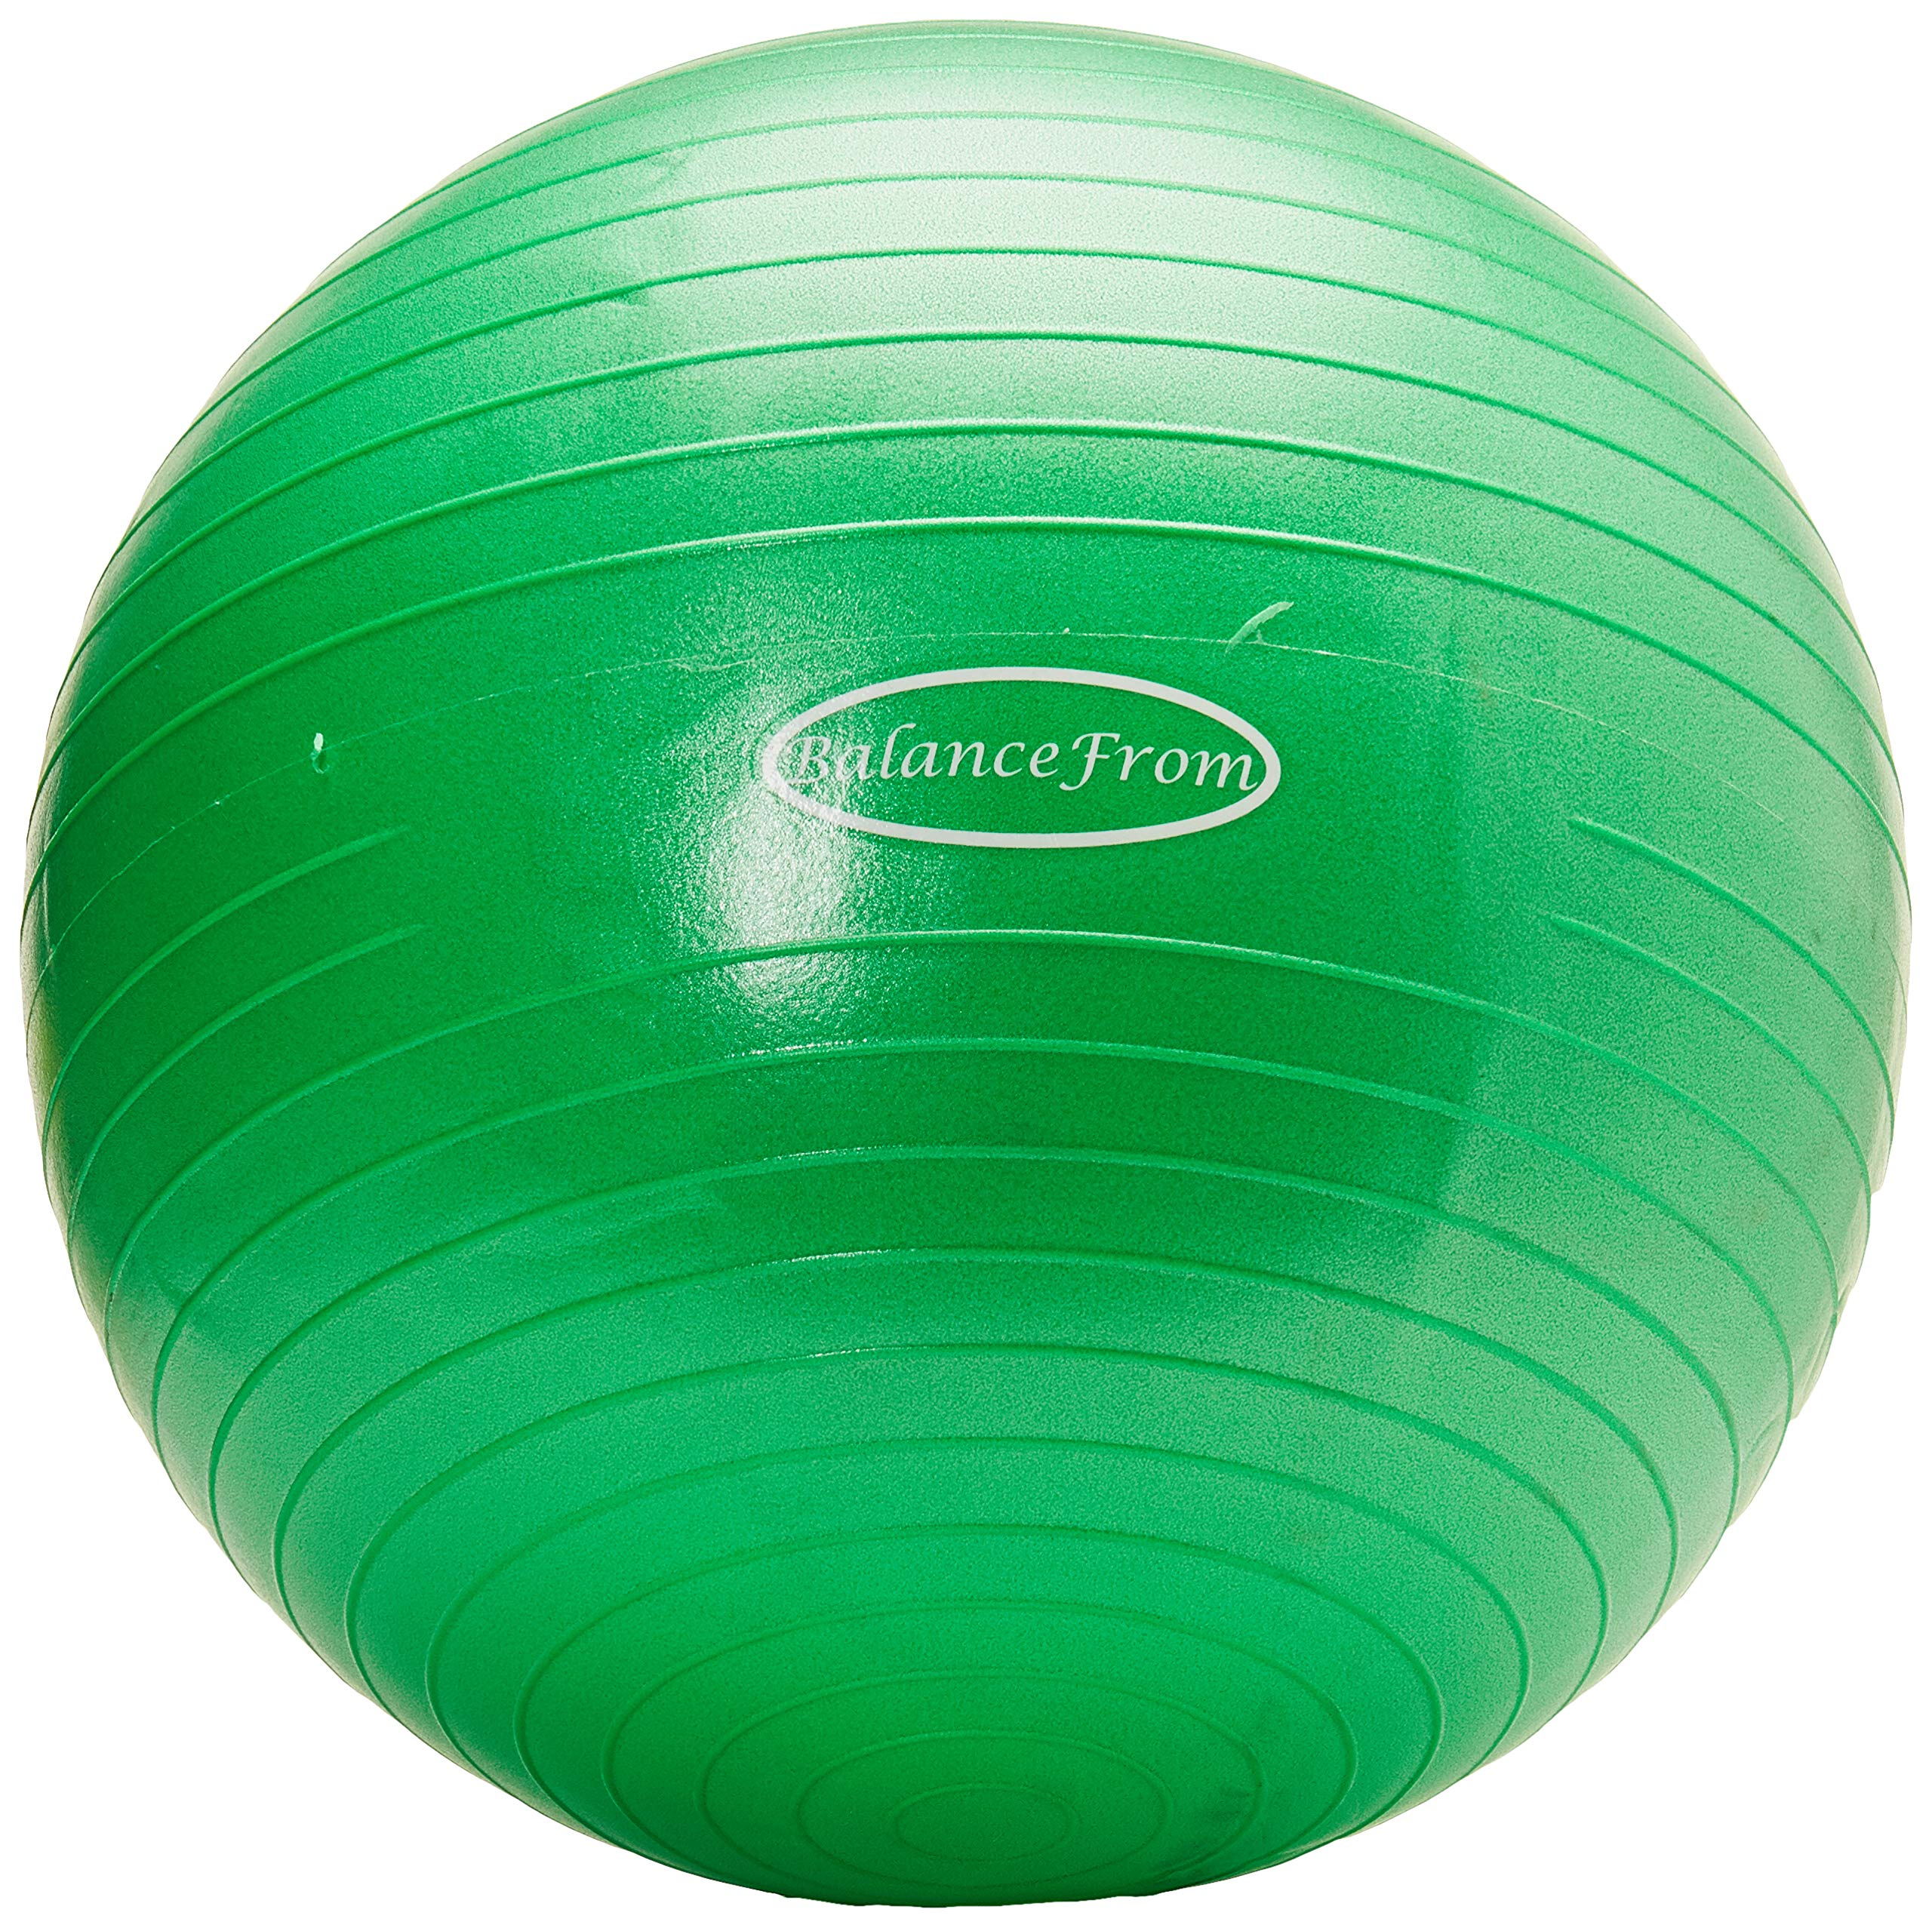 BalanceFrom Anti-Burst and Slip Resistant Exercise Ball Yoga Ball Fitness Ball Birthing Ball with Quick Pump, 2,000…